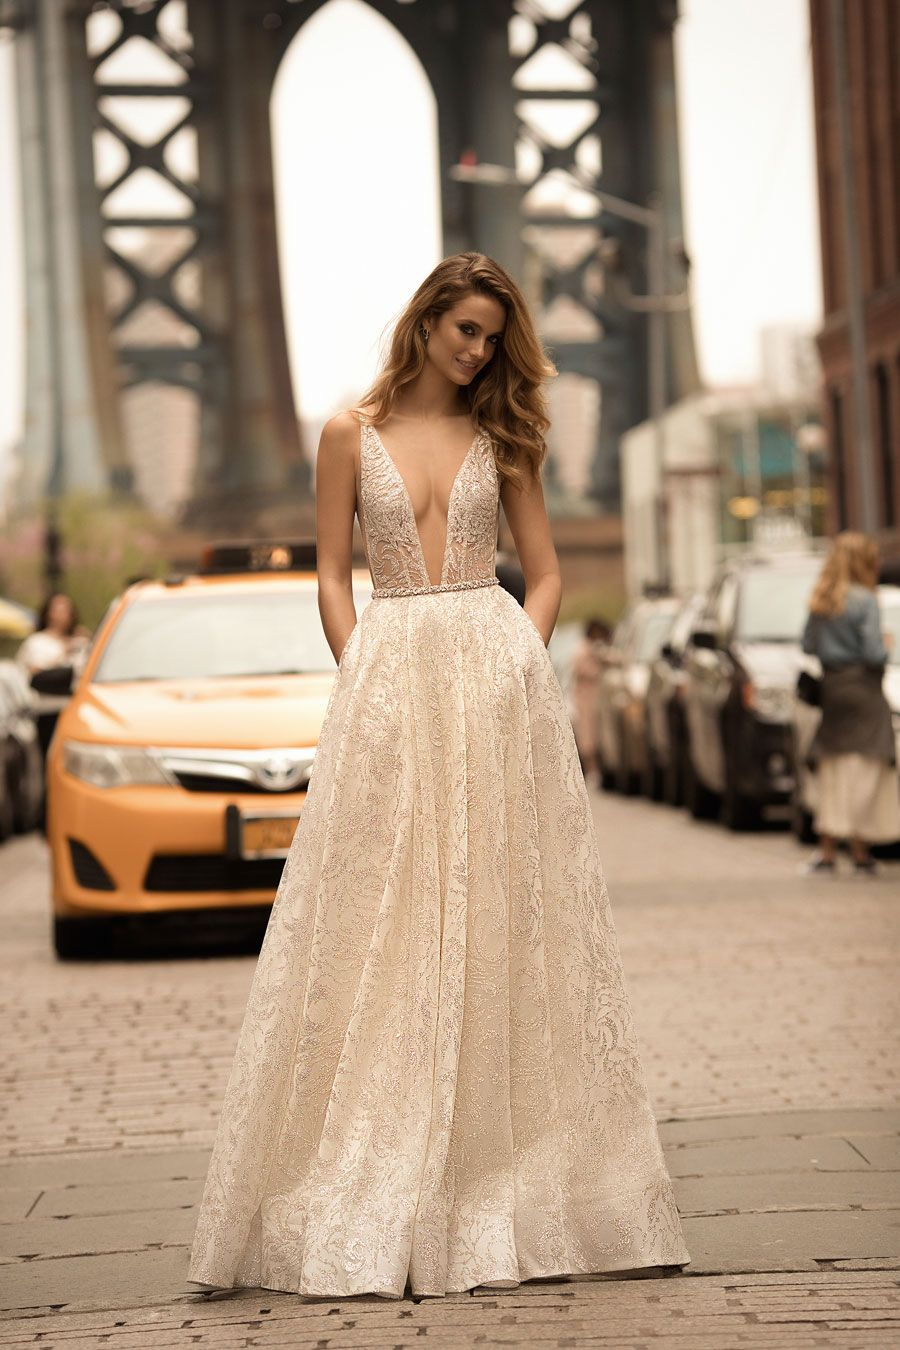 Berta bridal the most indemand wedding dresses in the world